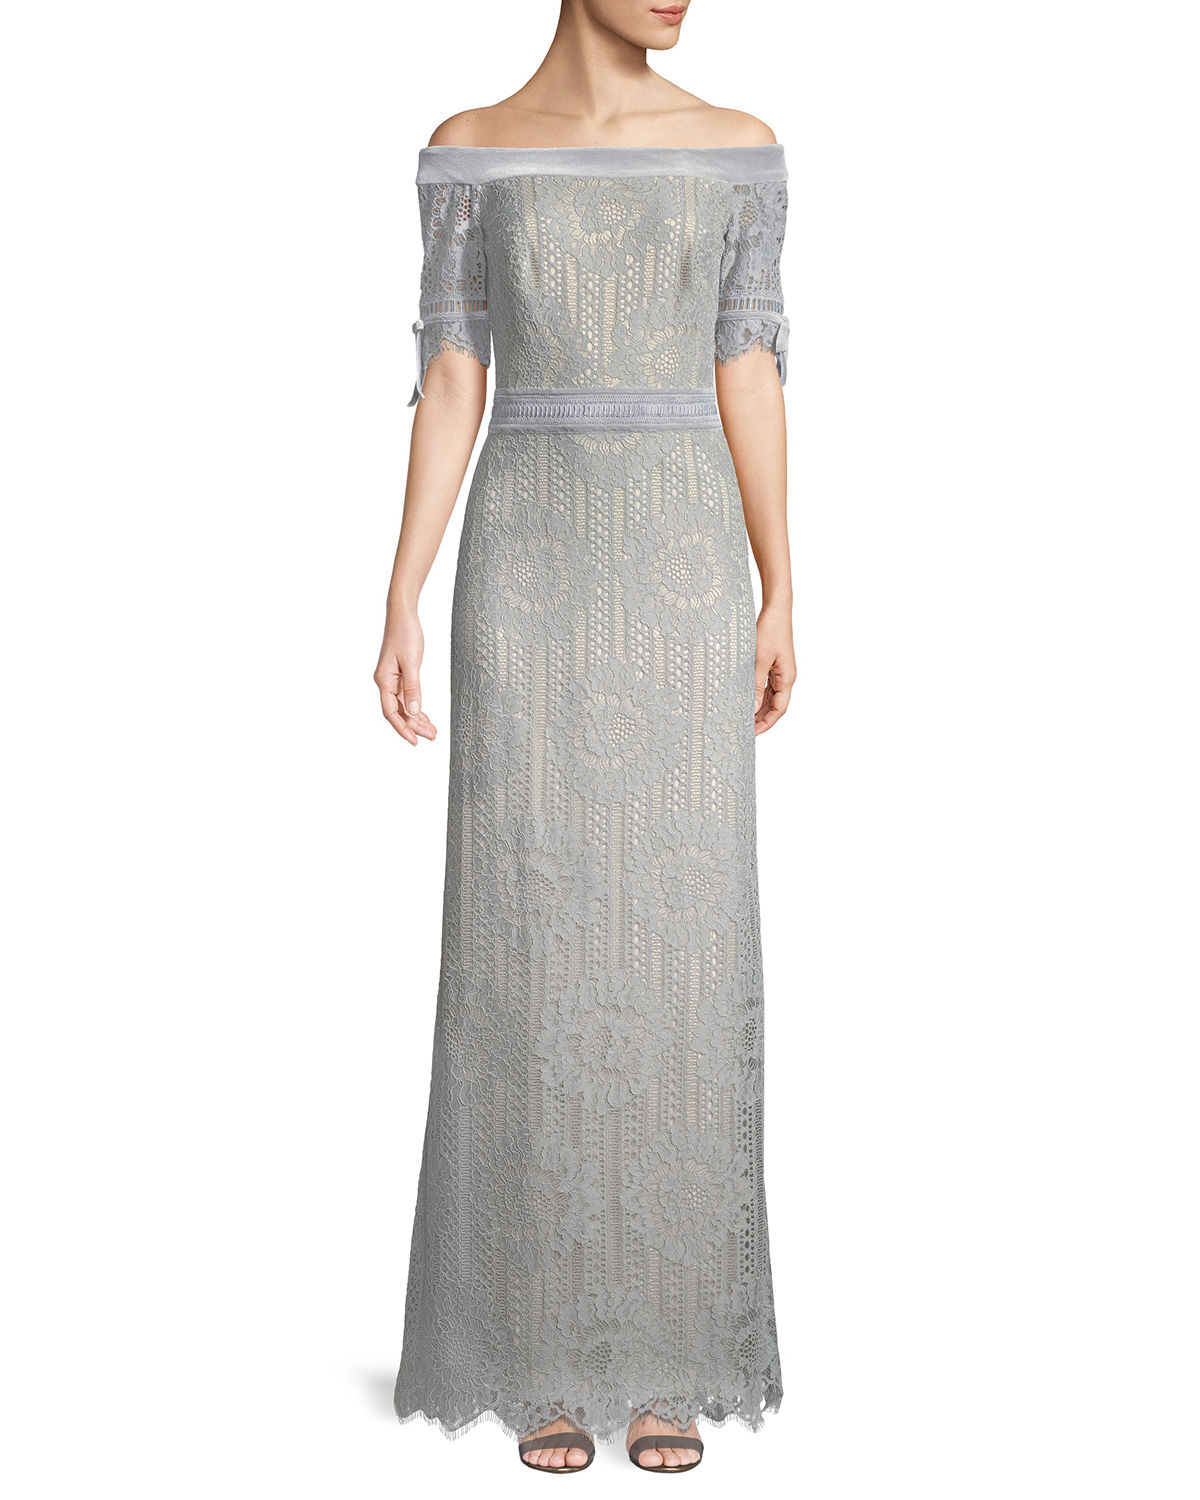 Tadashi Shoji Off-the-Shoulder Circular Lace Evening Gown | Neiman ...